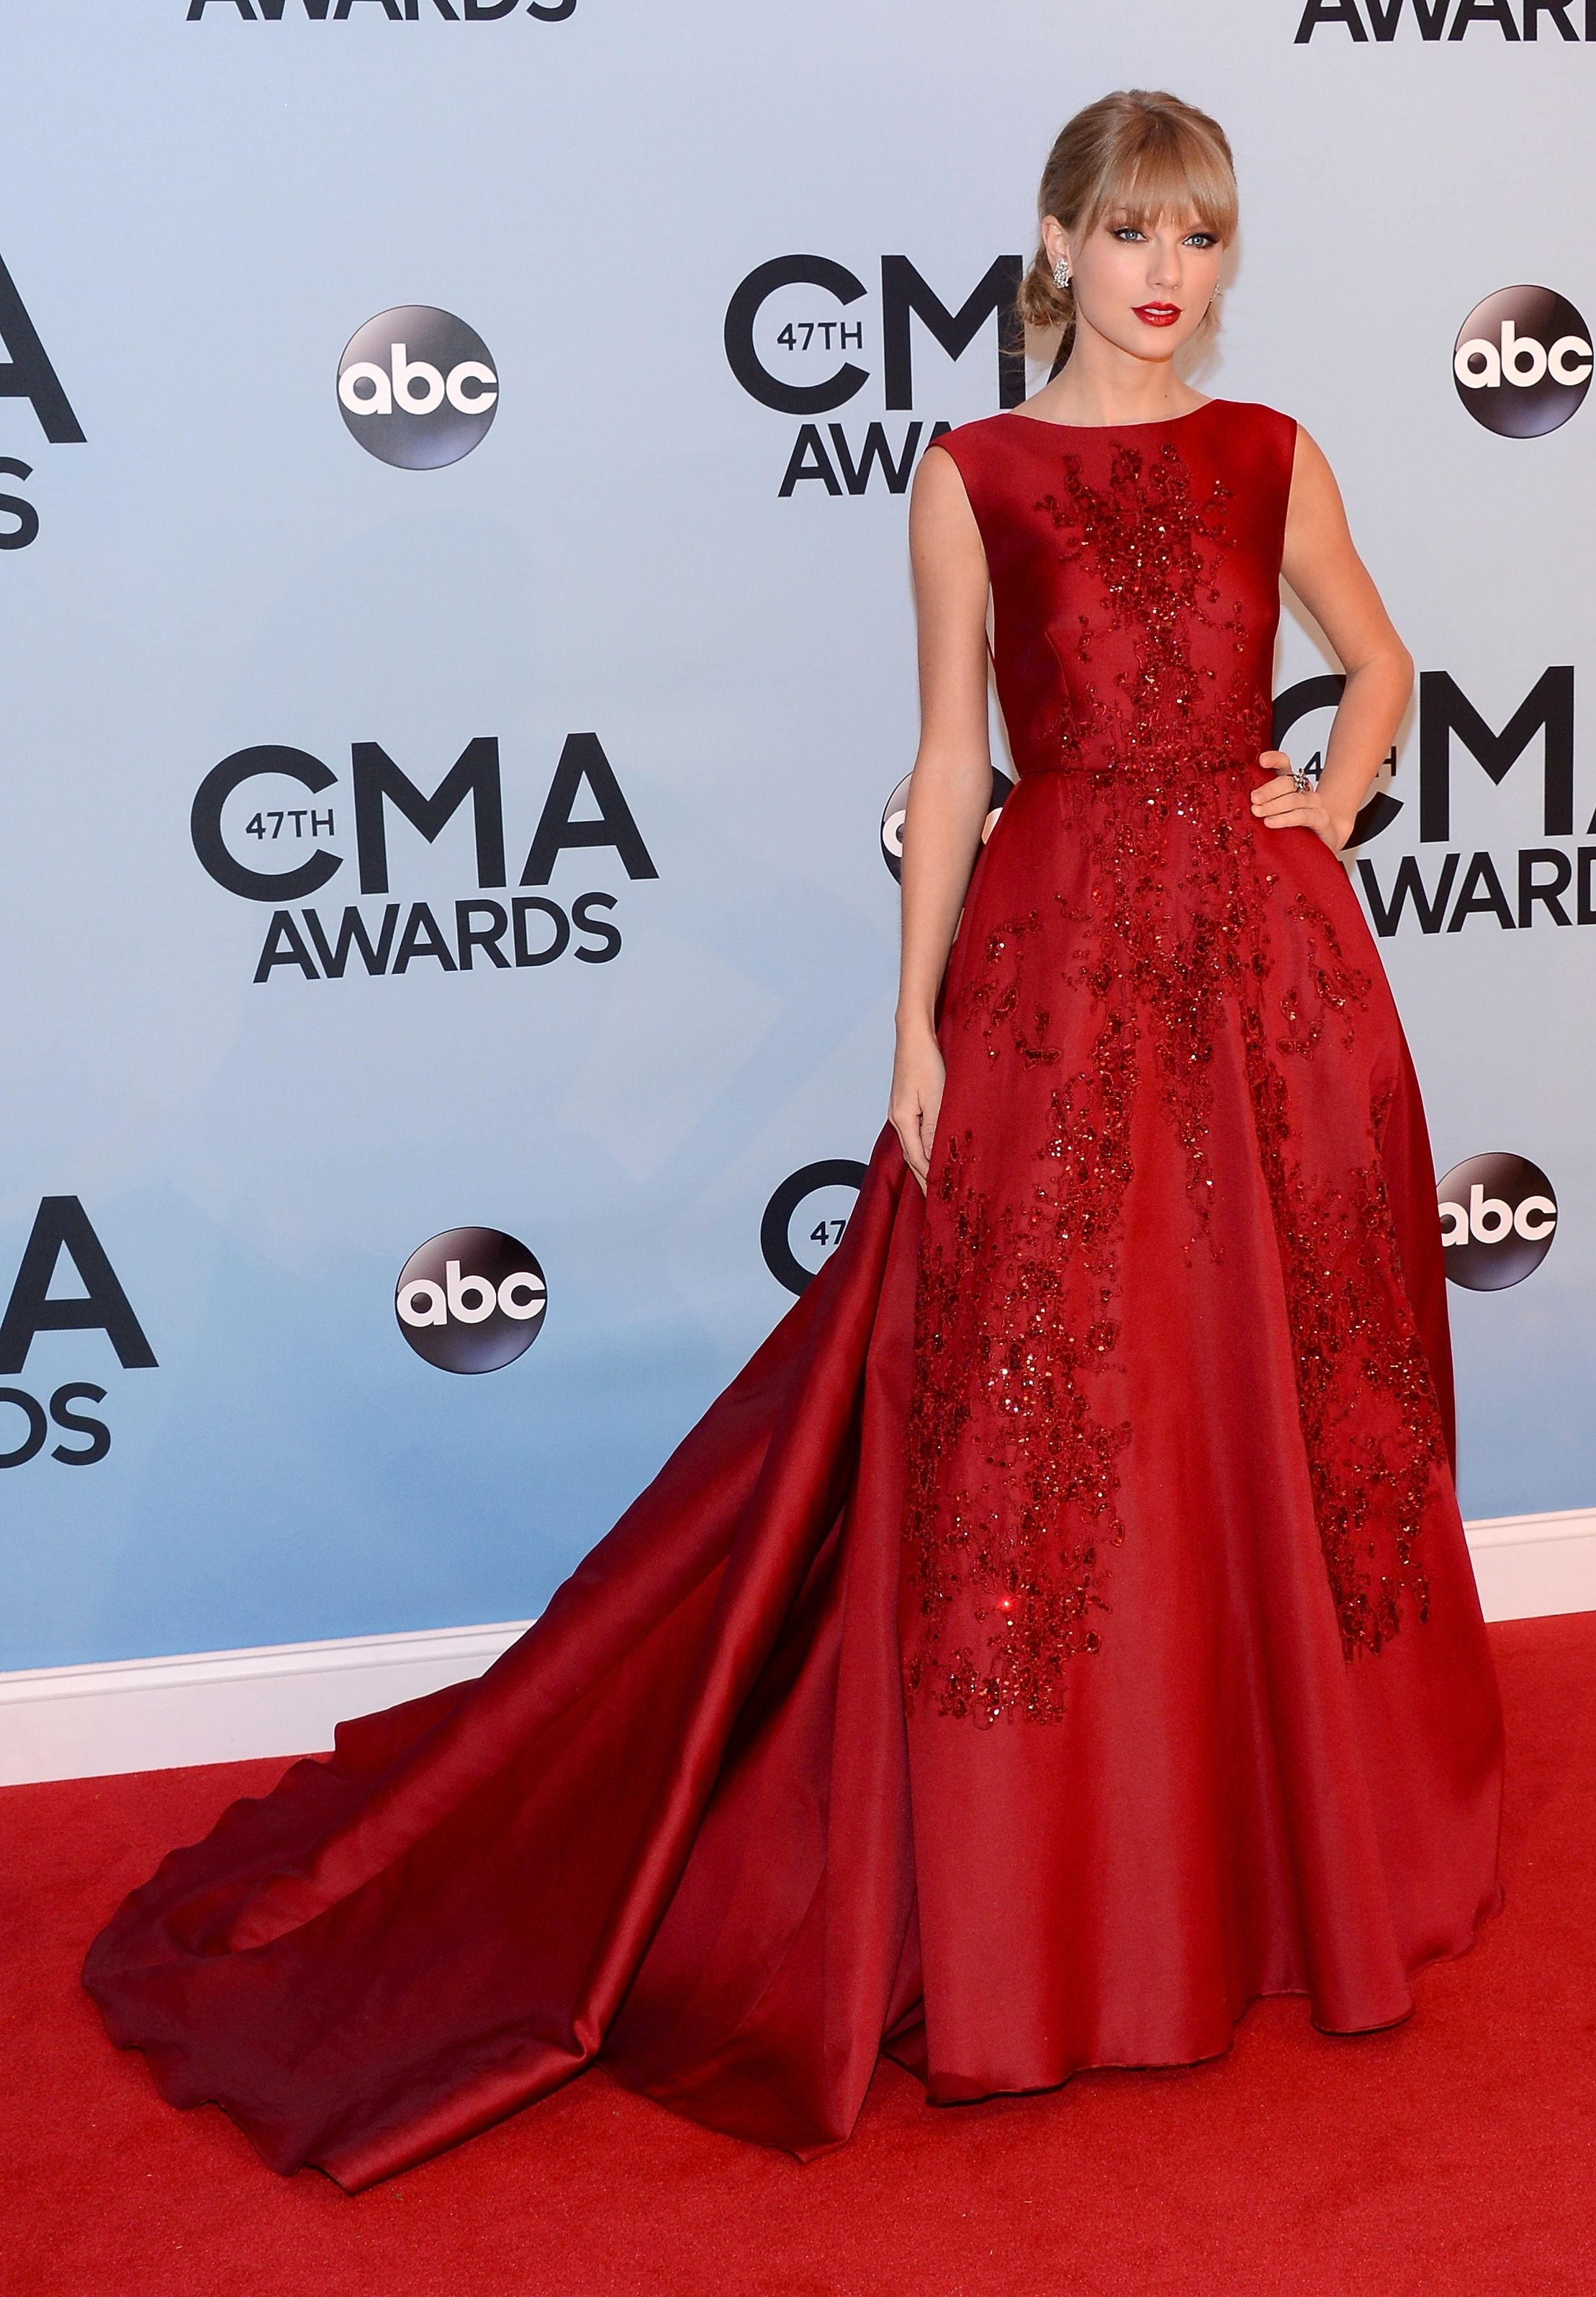 Taylor Swift Roter Teppich Kleider 2016-2017 - http://dasmode.net ...